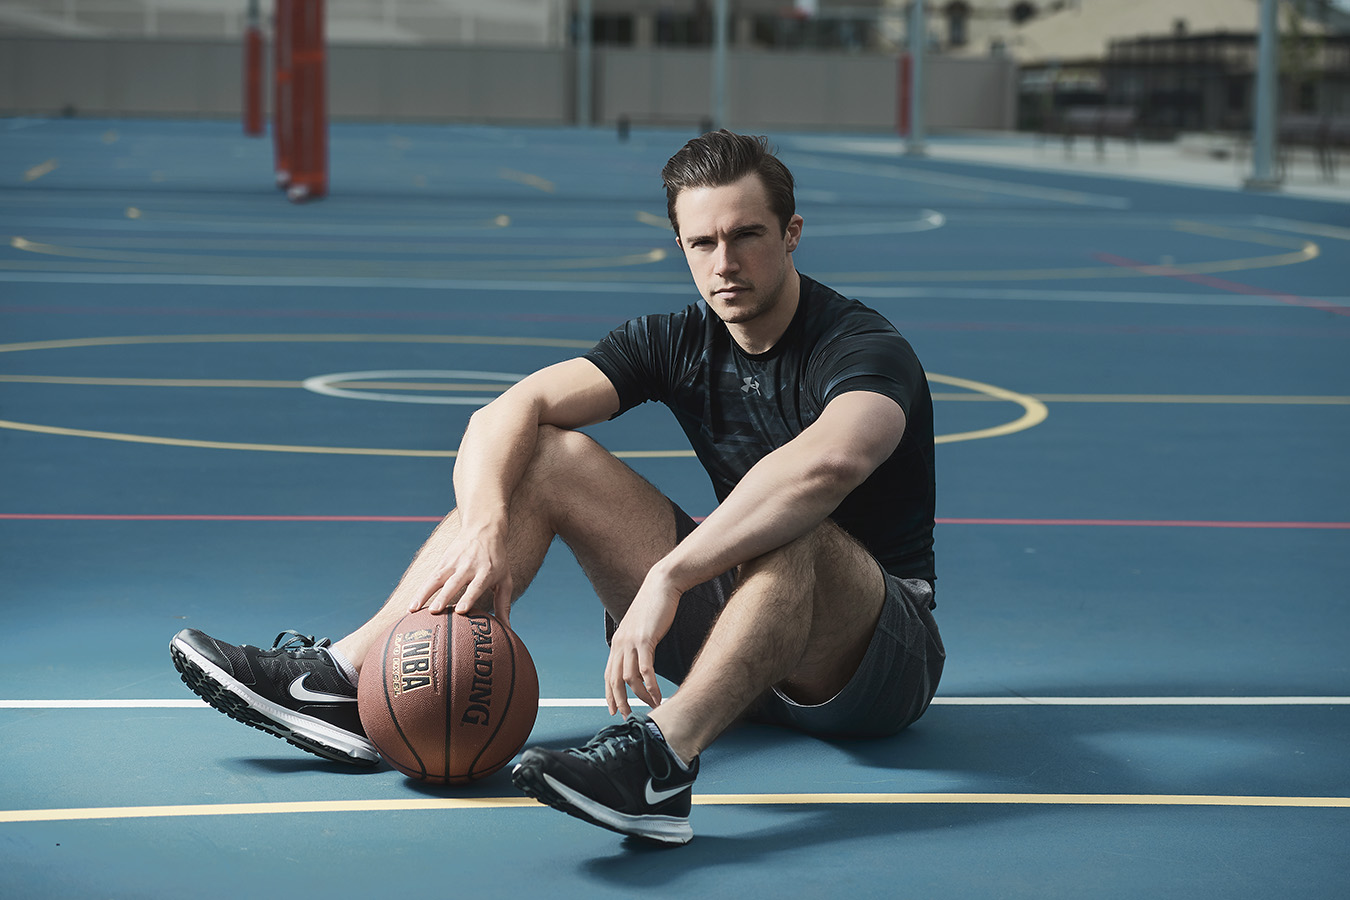 Neal on basketball court